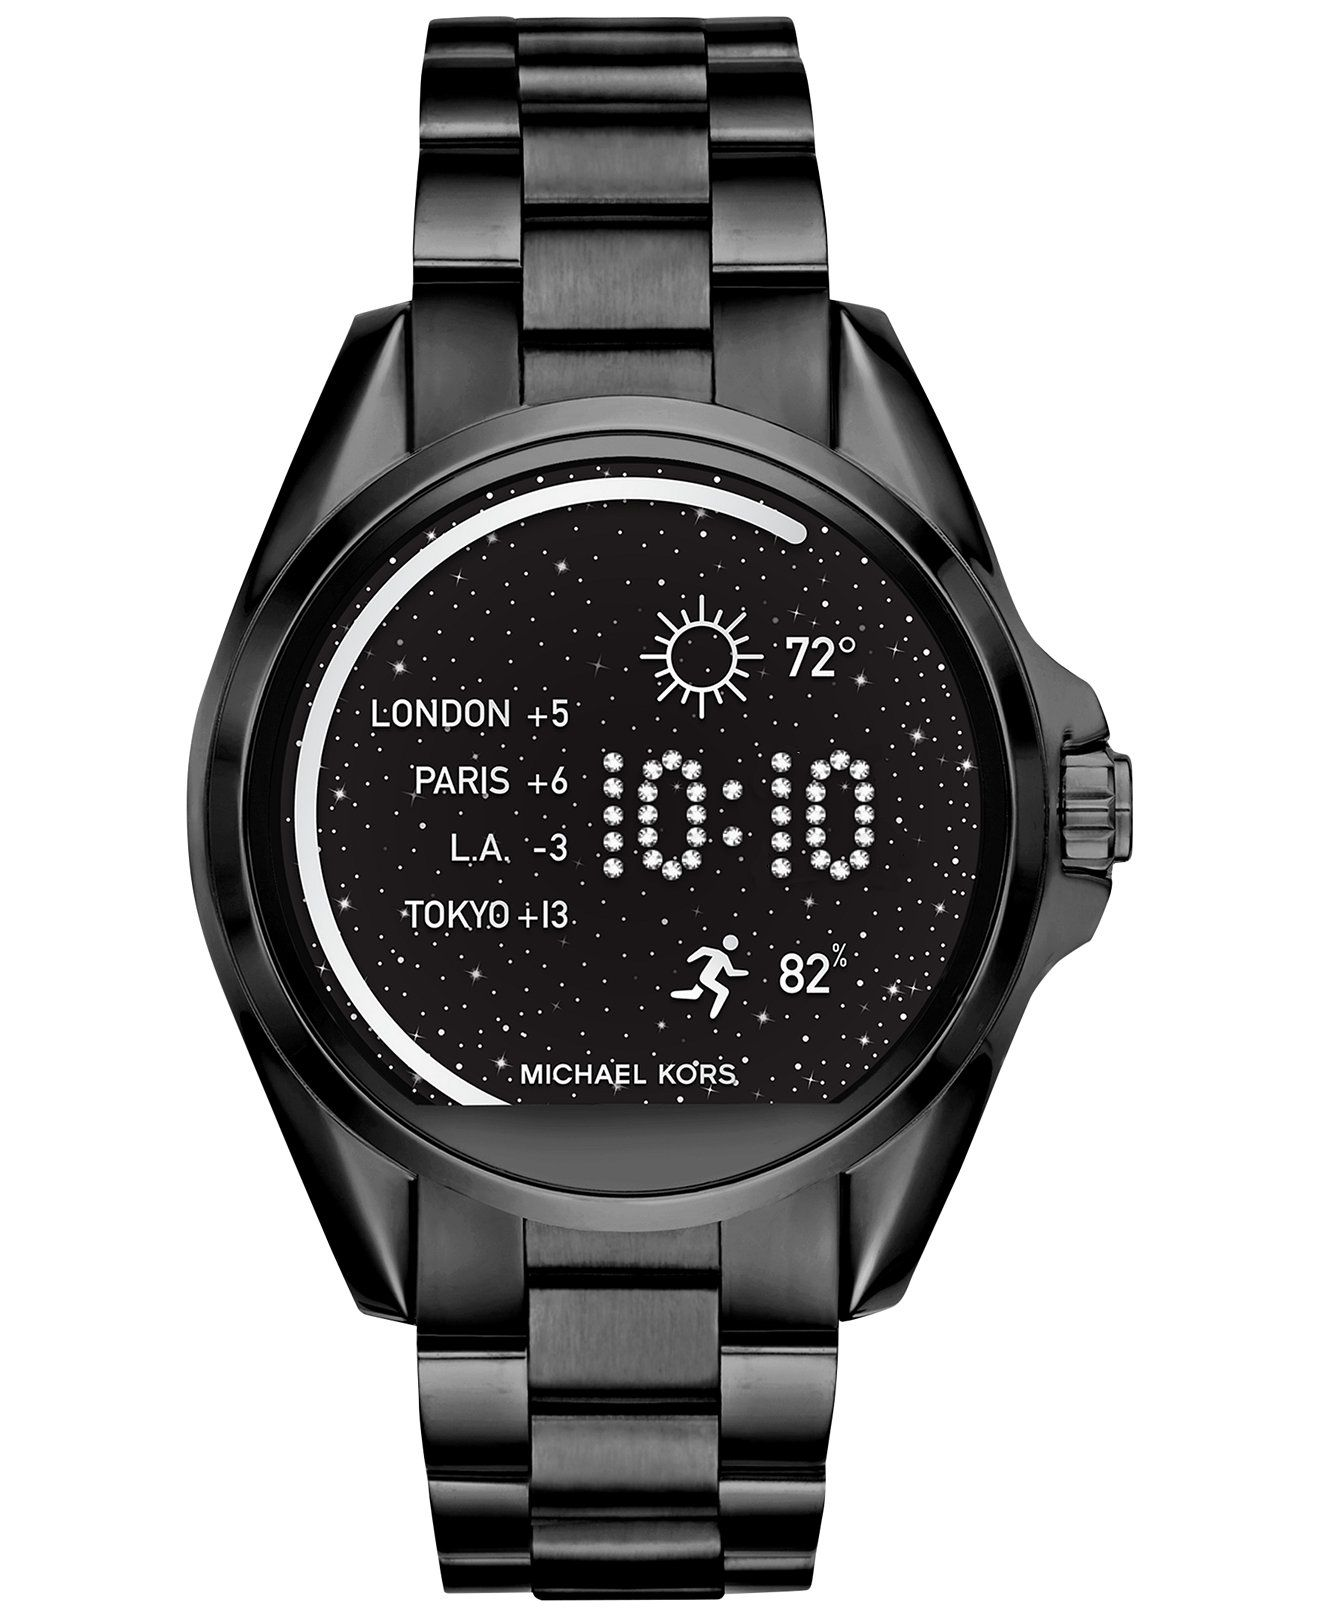 c37cb3805717 You ll love the dark dramatic look of this feature-filled smartwatch from Michael  Kors  spectacular Bradshaw collection.